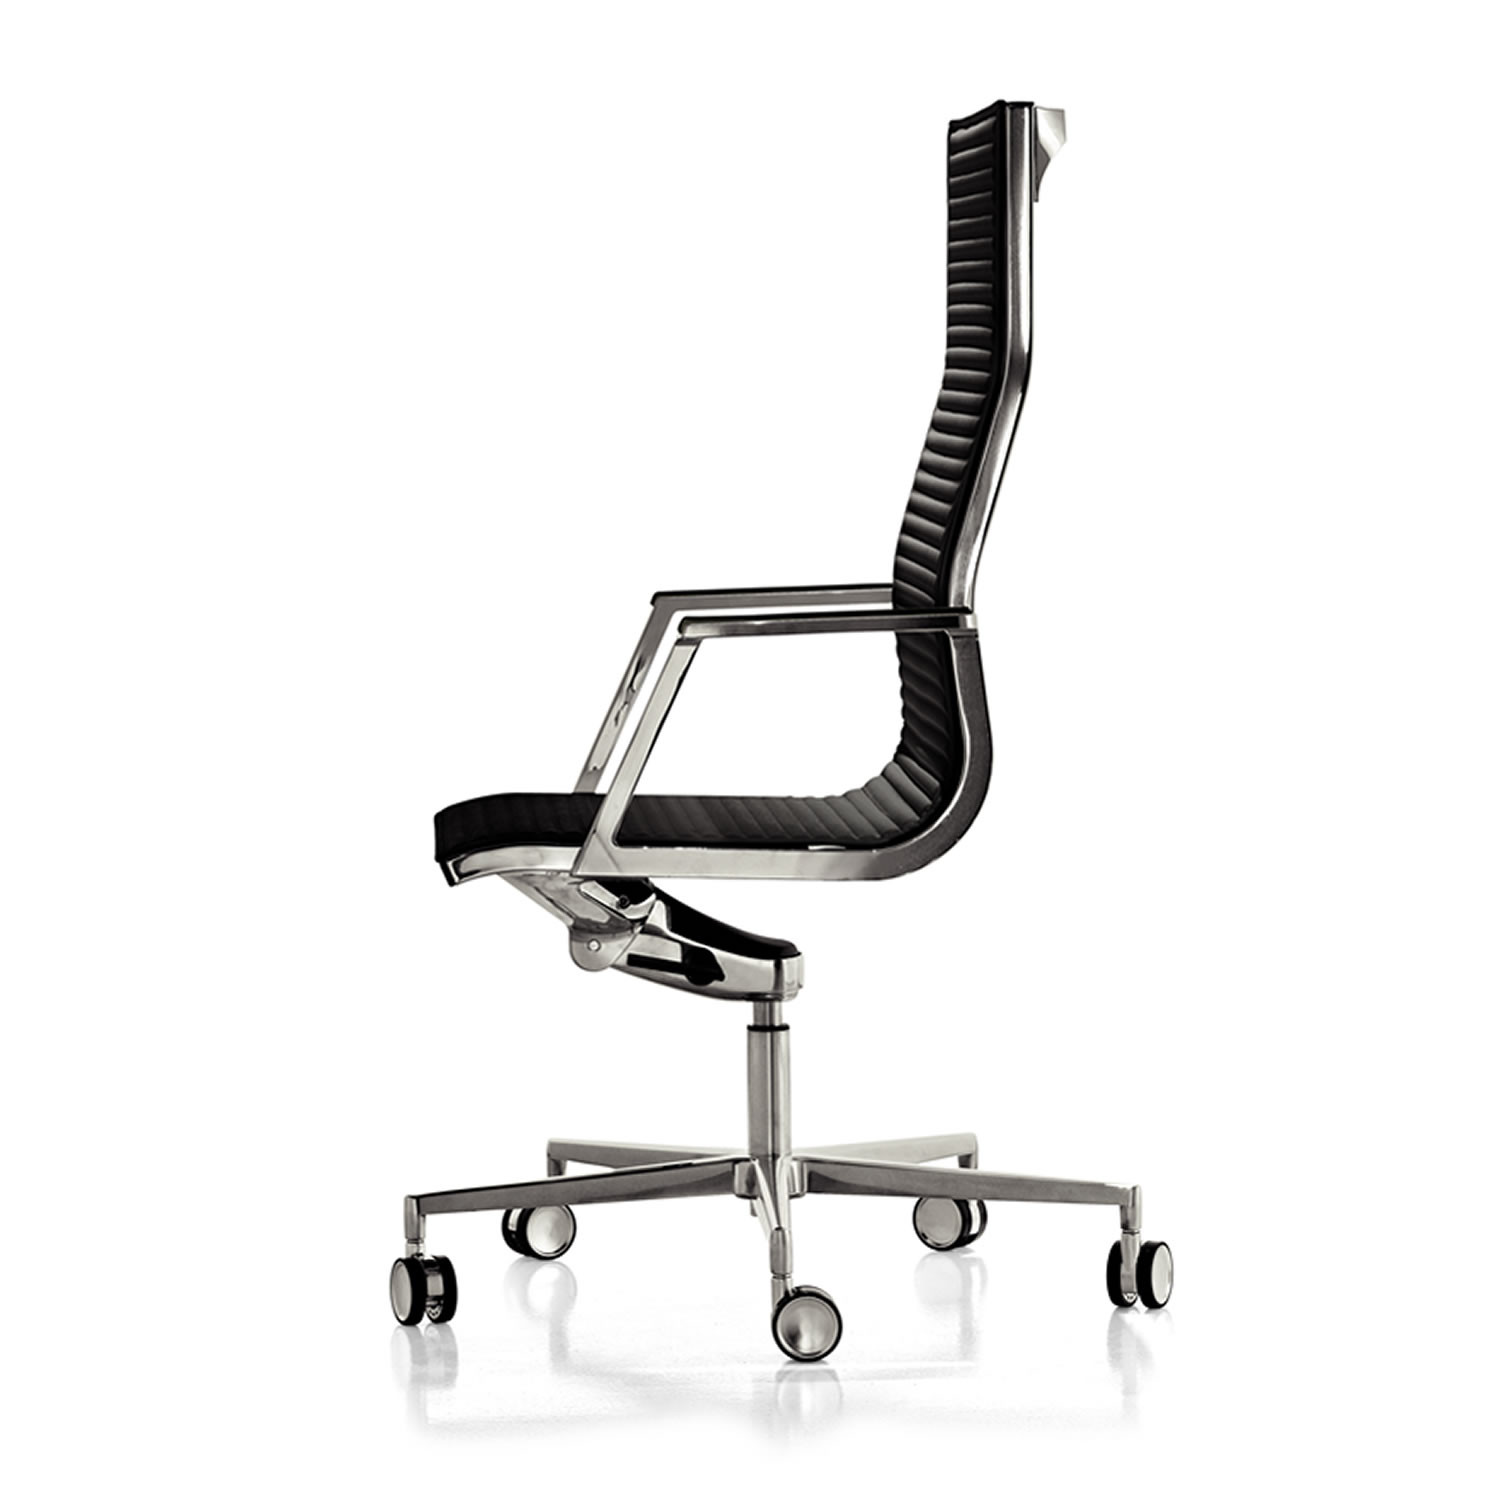 Nulite High Back Executive Chair